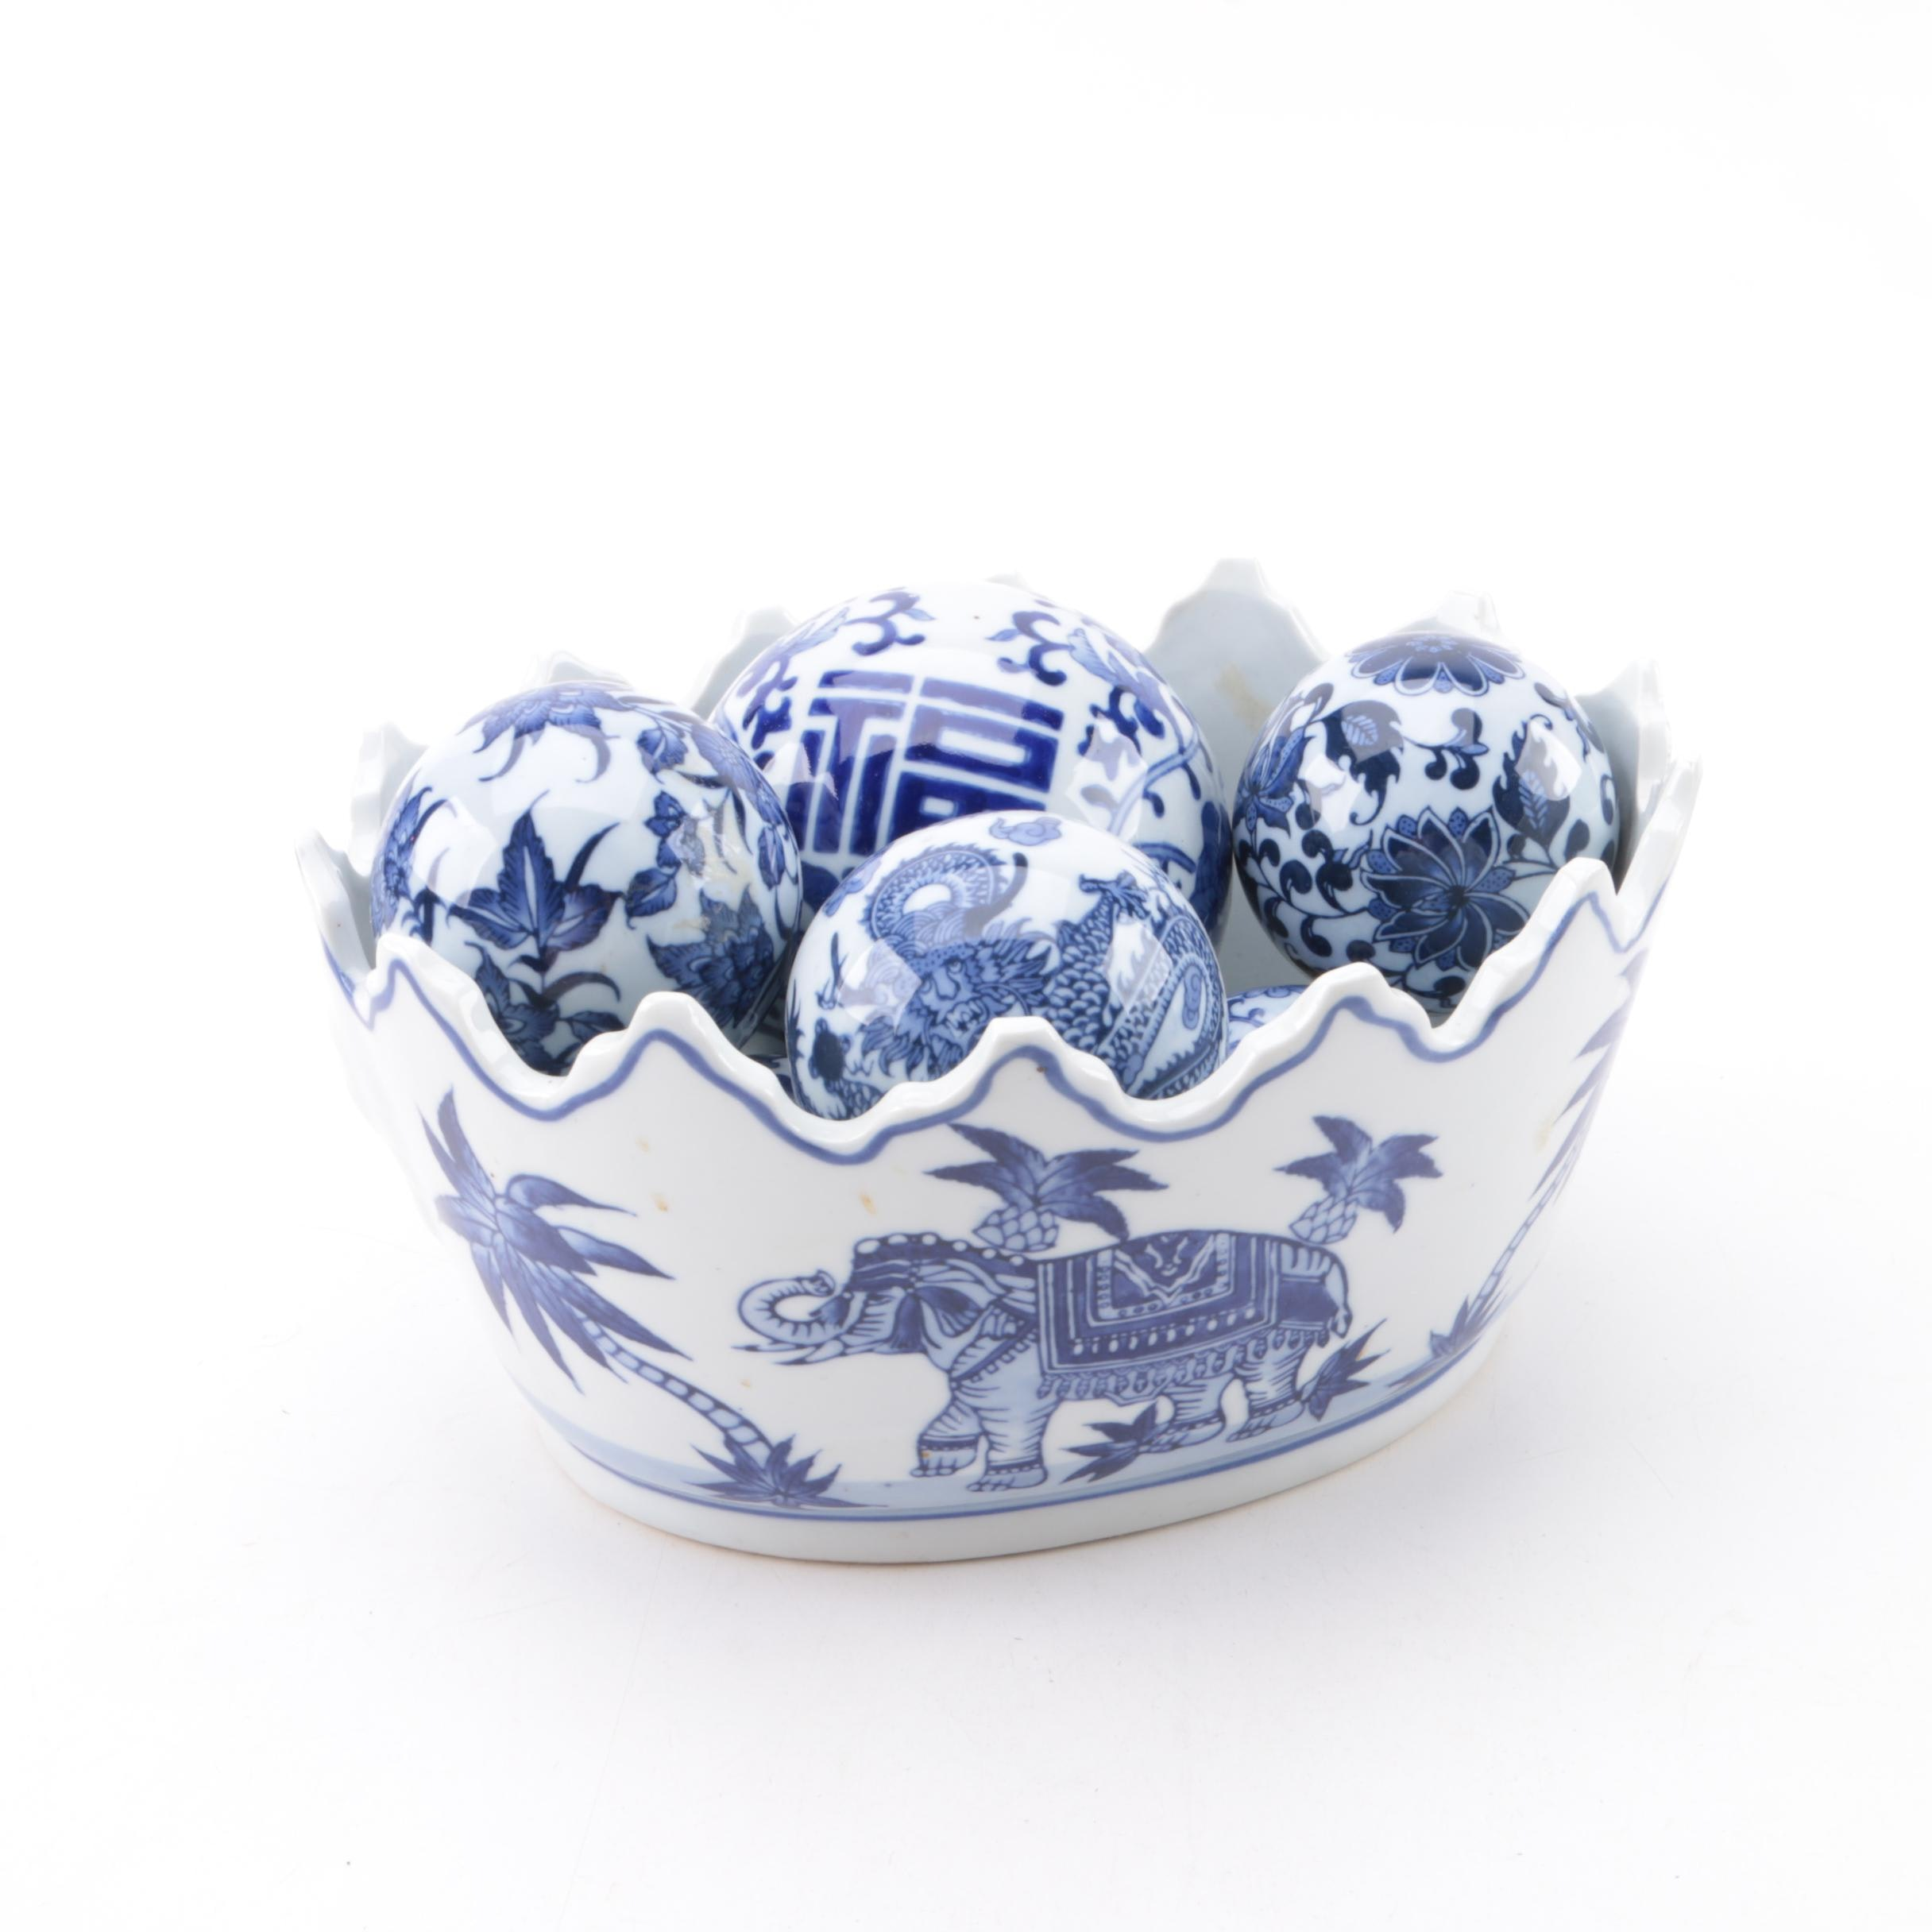 Chinese Porcelain Centerpiece Bowl with Carpet Balls